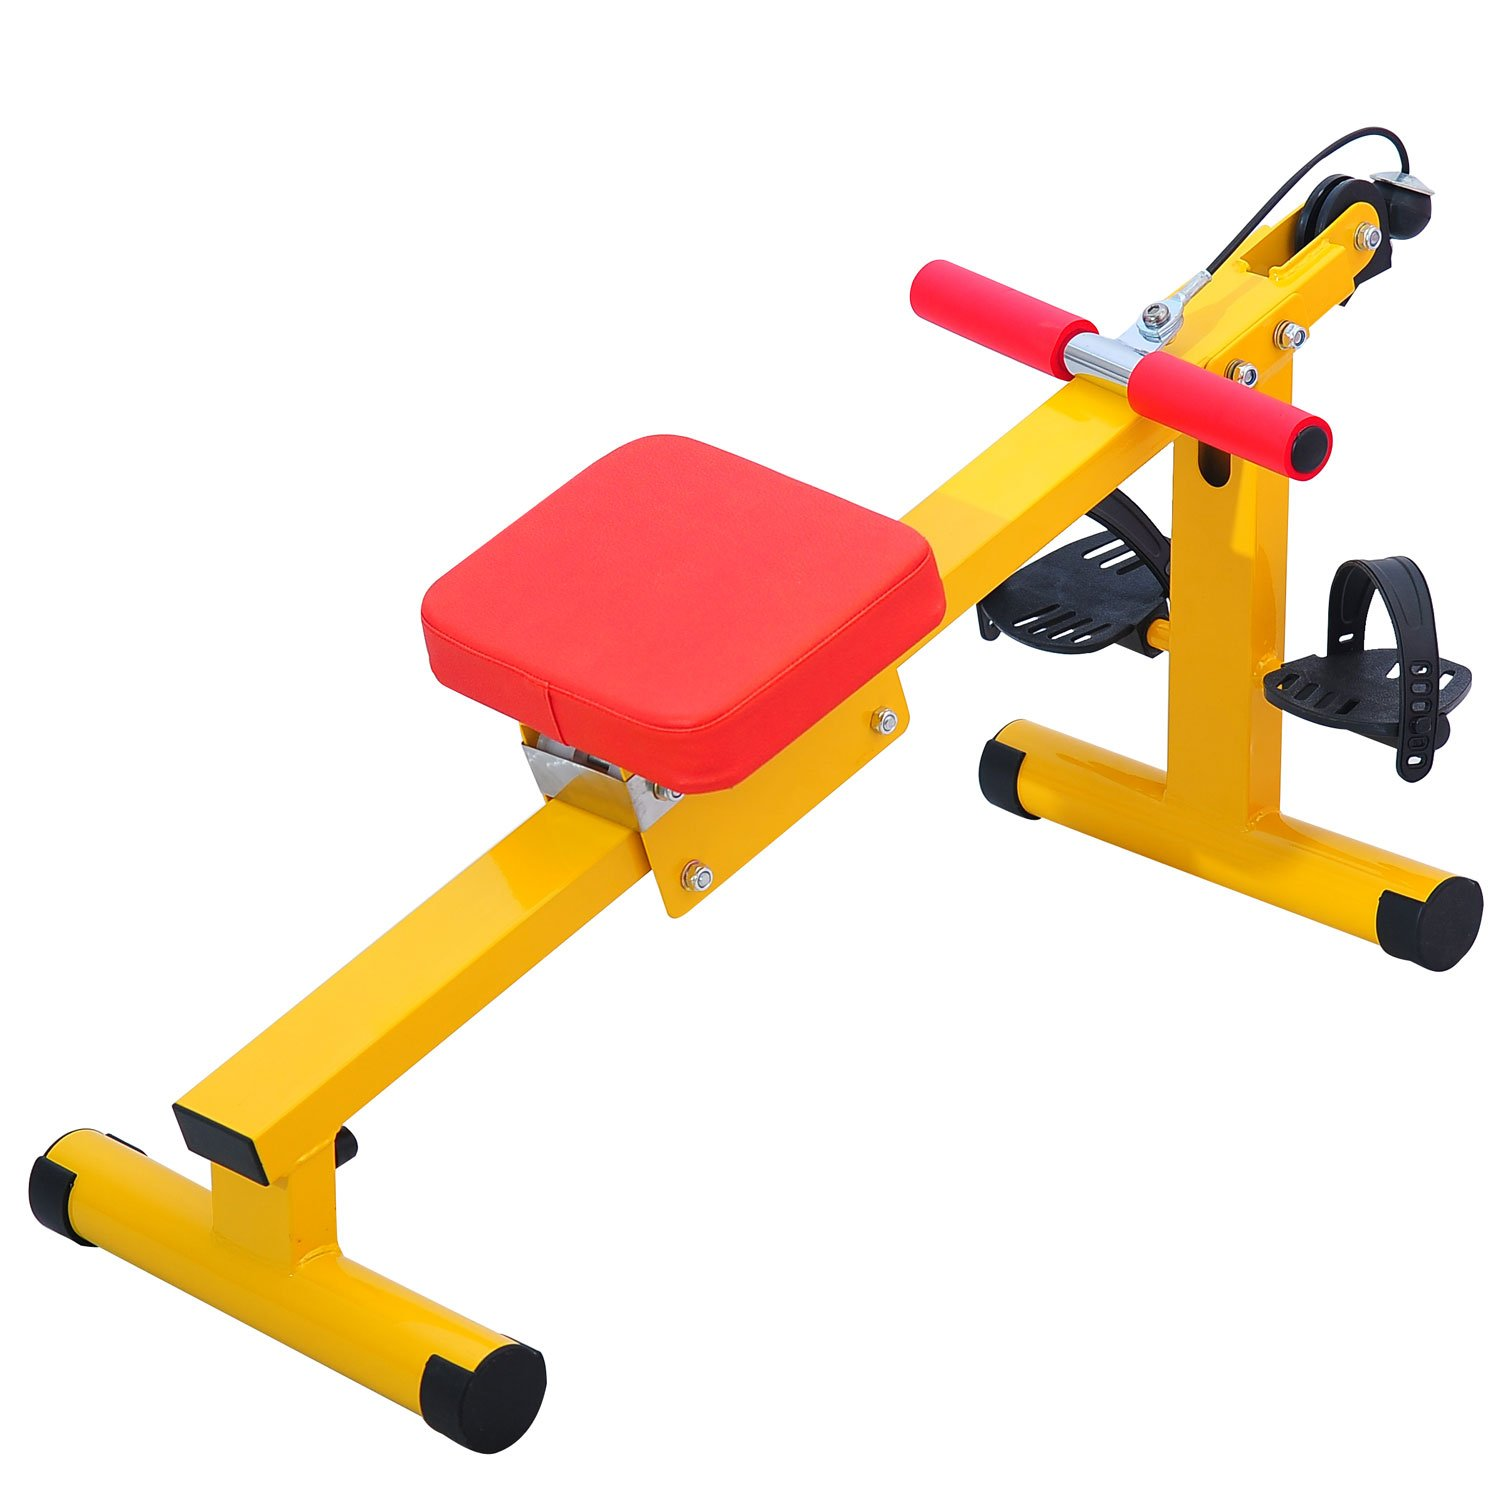 Qaba Lil' Exerciser Fitness Equipment for Kids - Inclined Rower at Sears.com